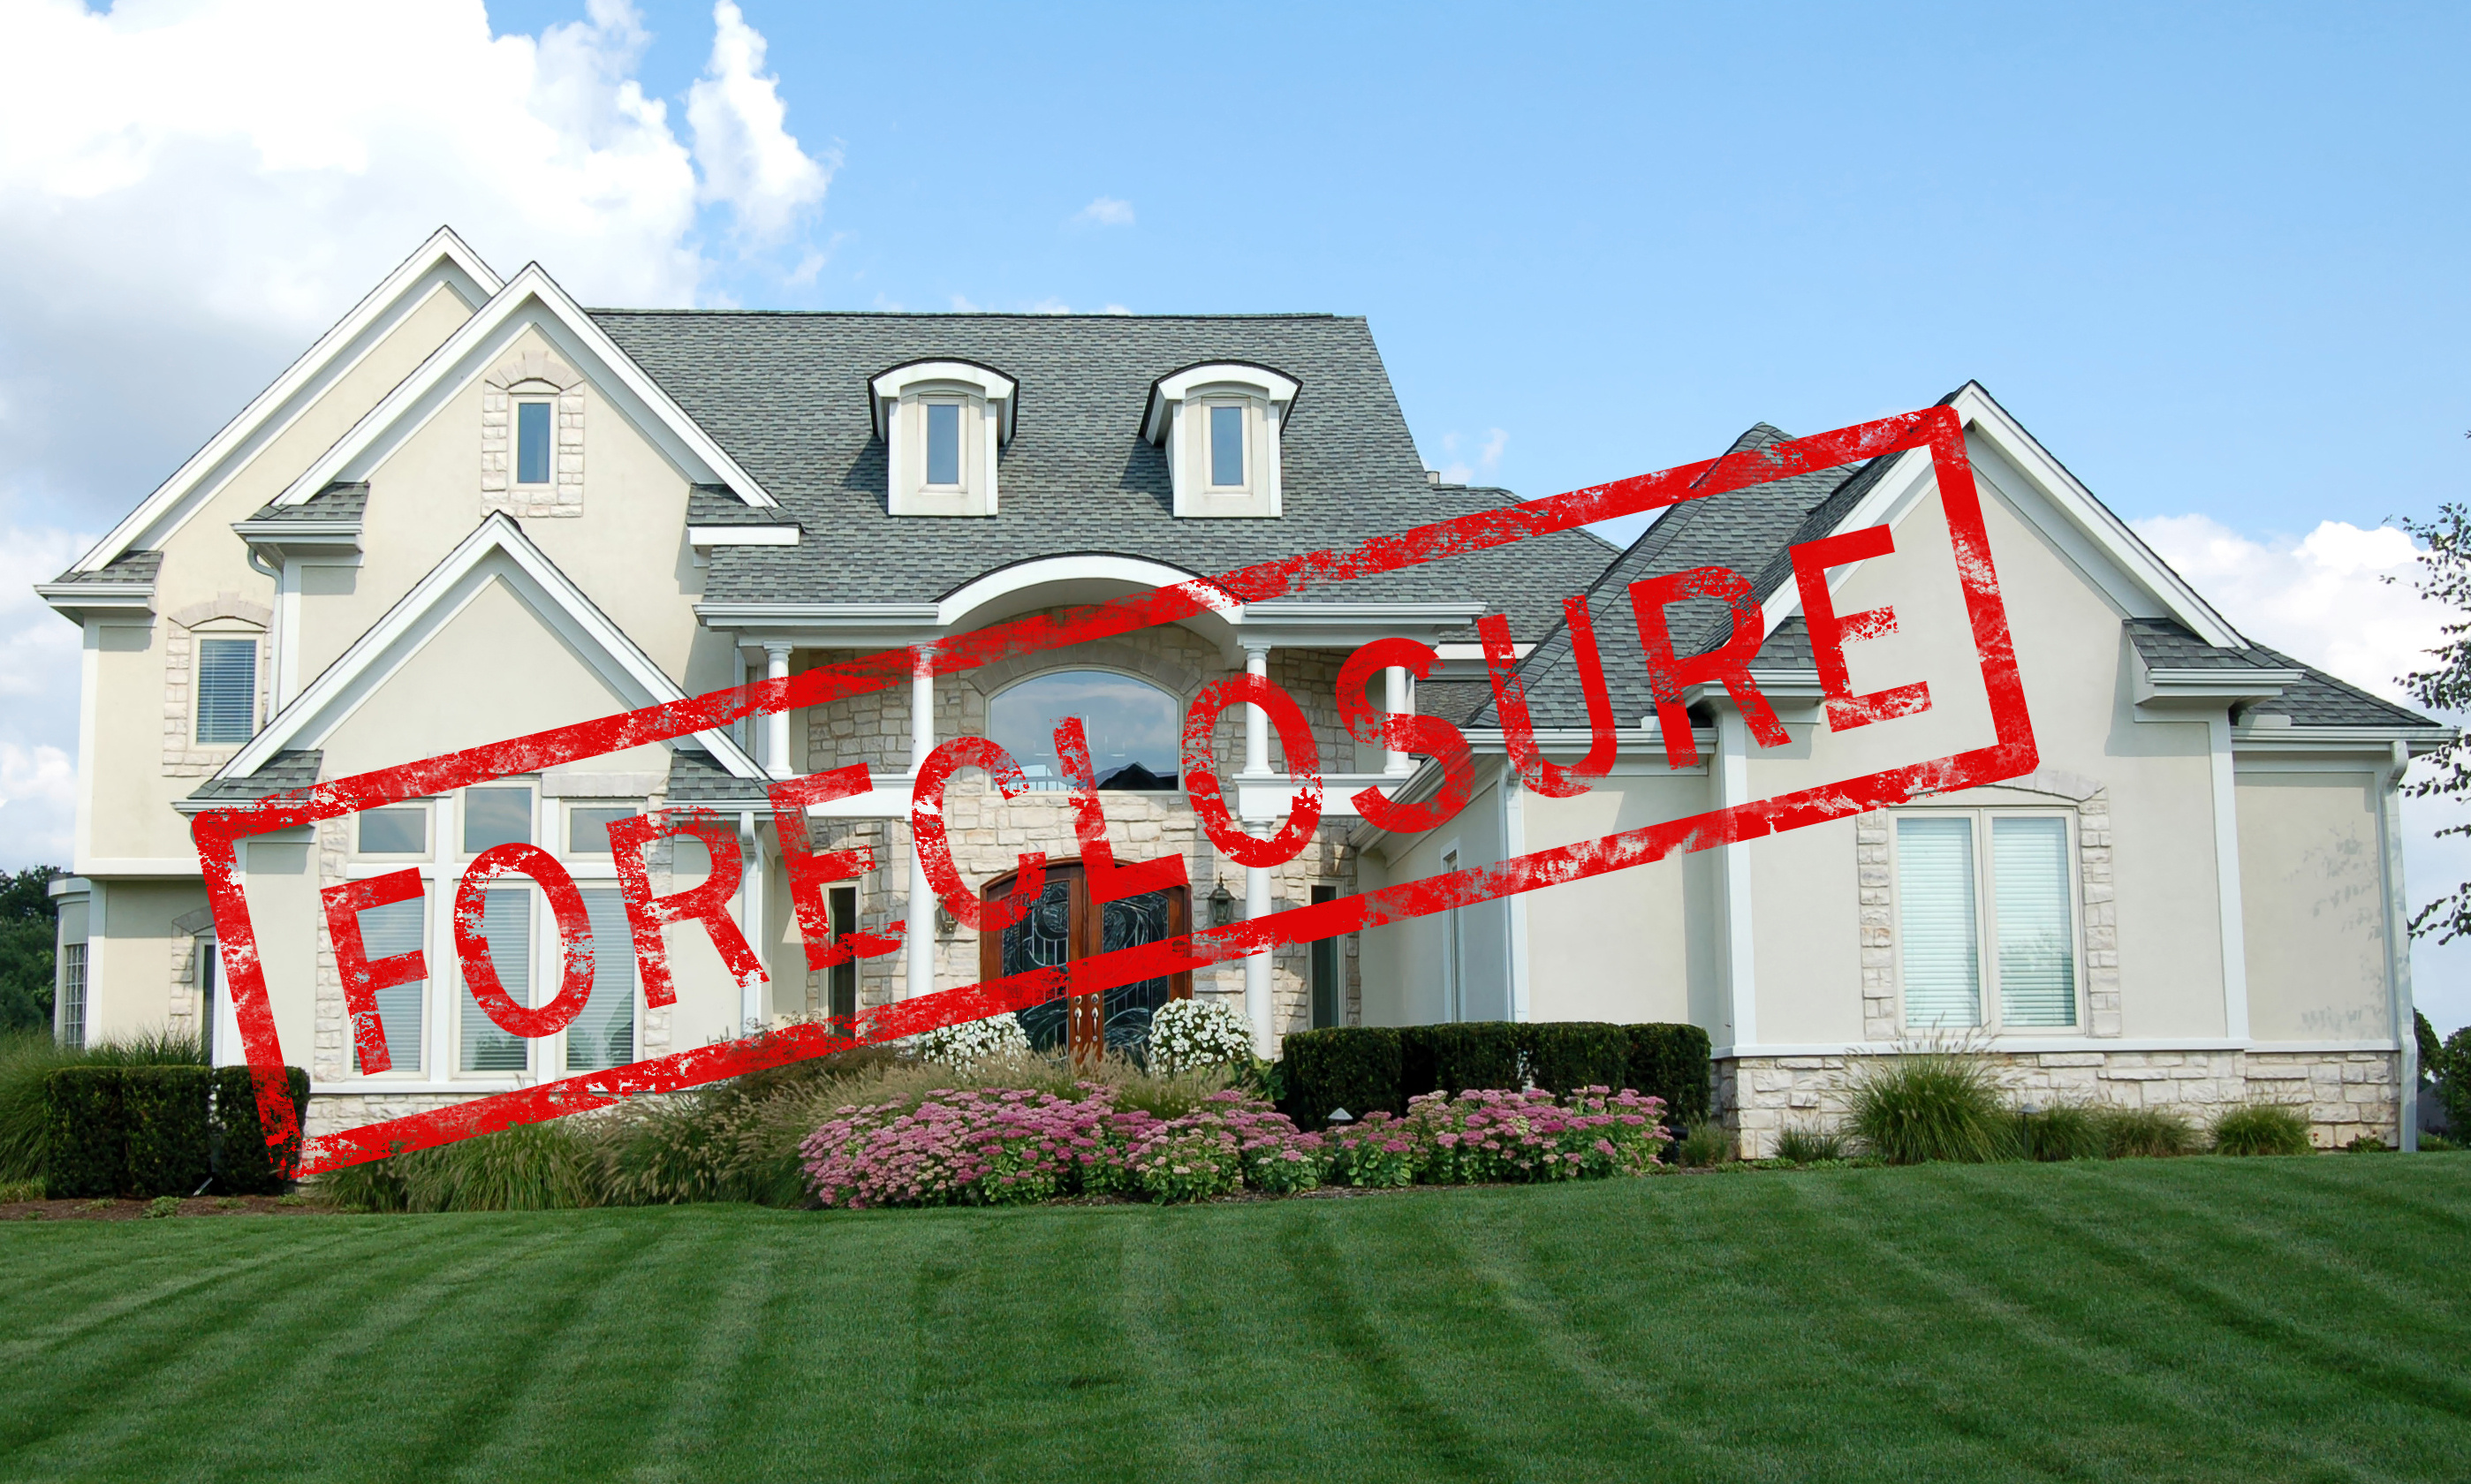 Call Burwan Appraisal Services to order appraisals of Morris foreclosures